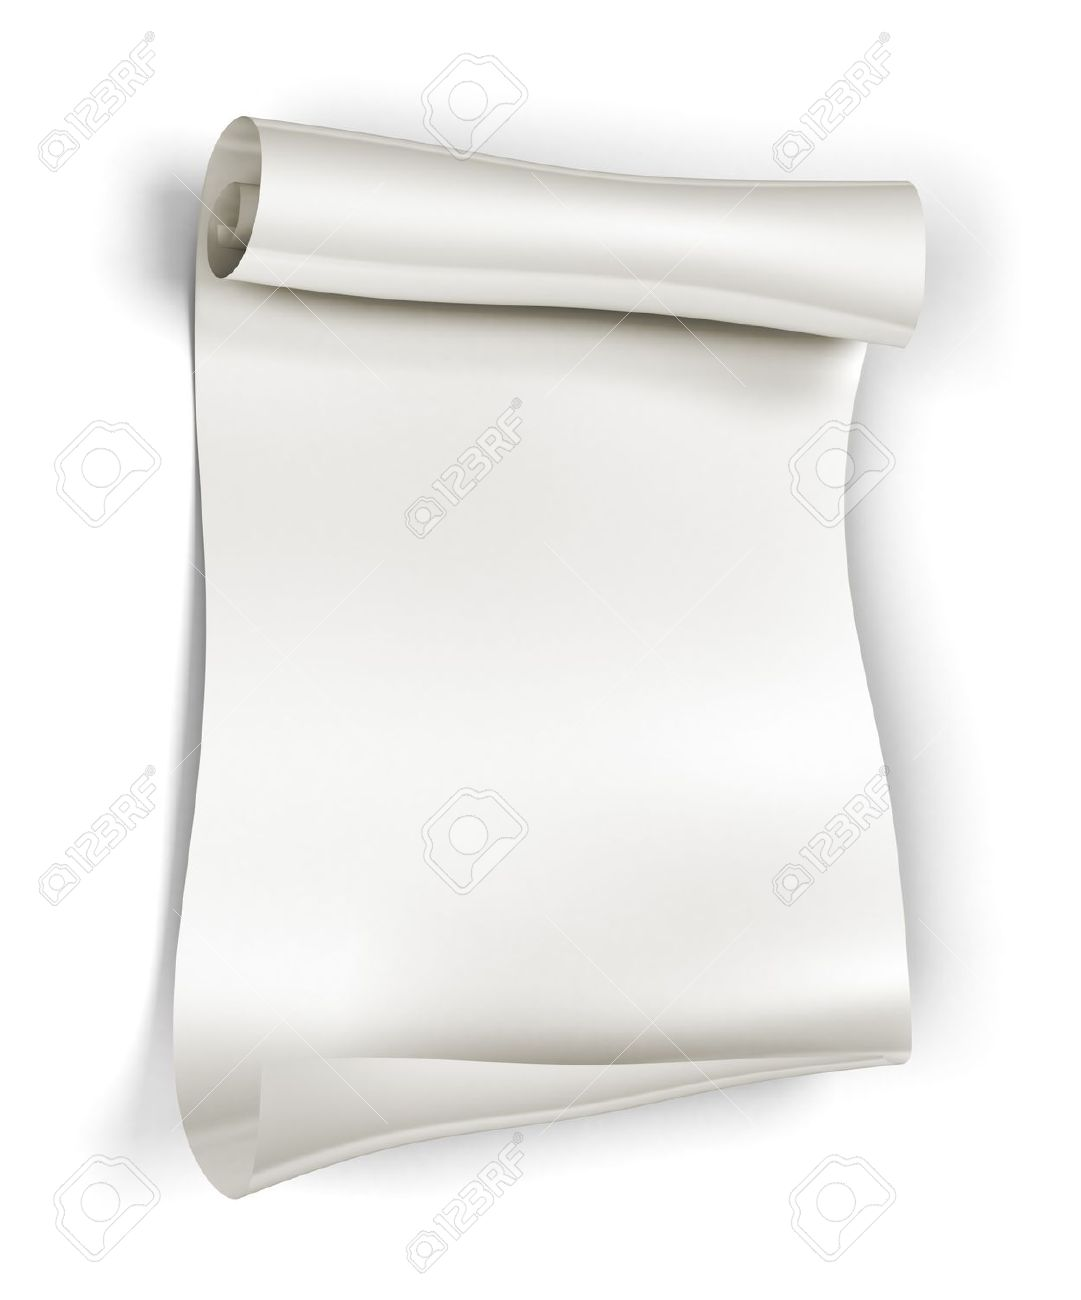 Scroll paper for writing